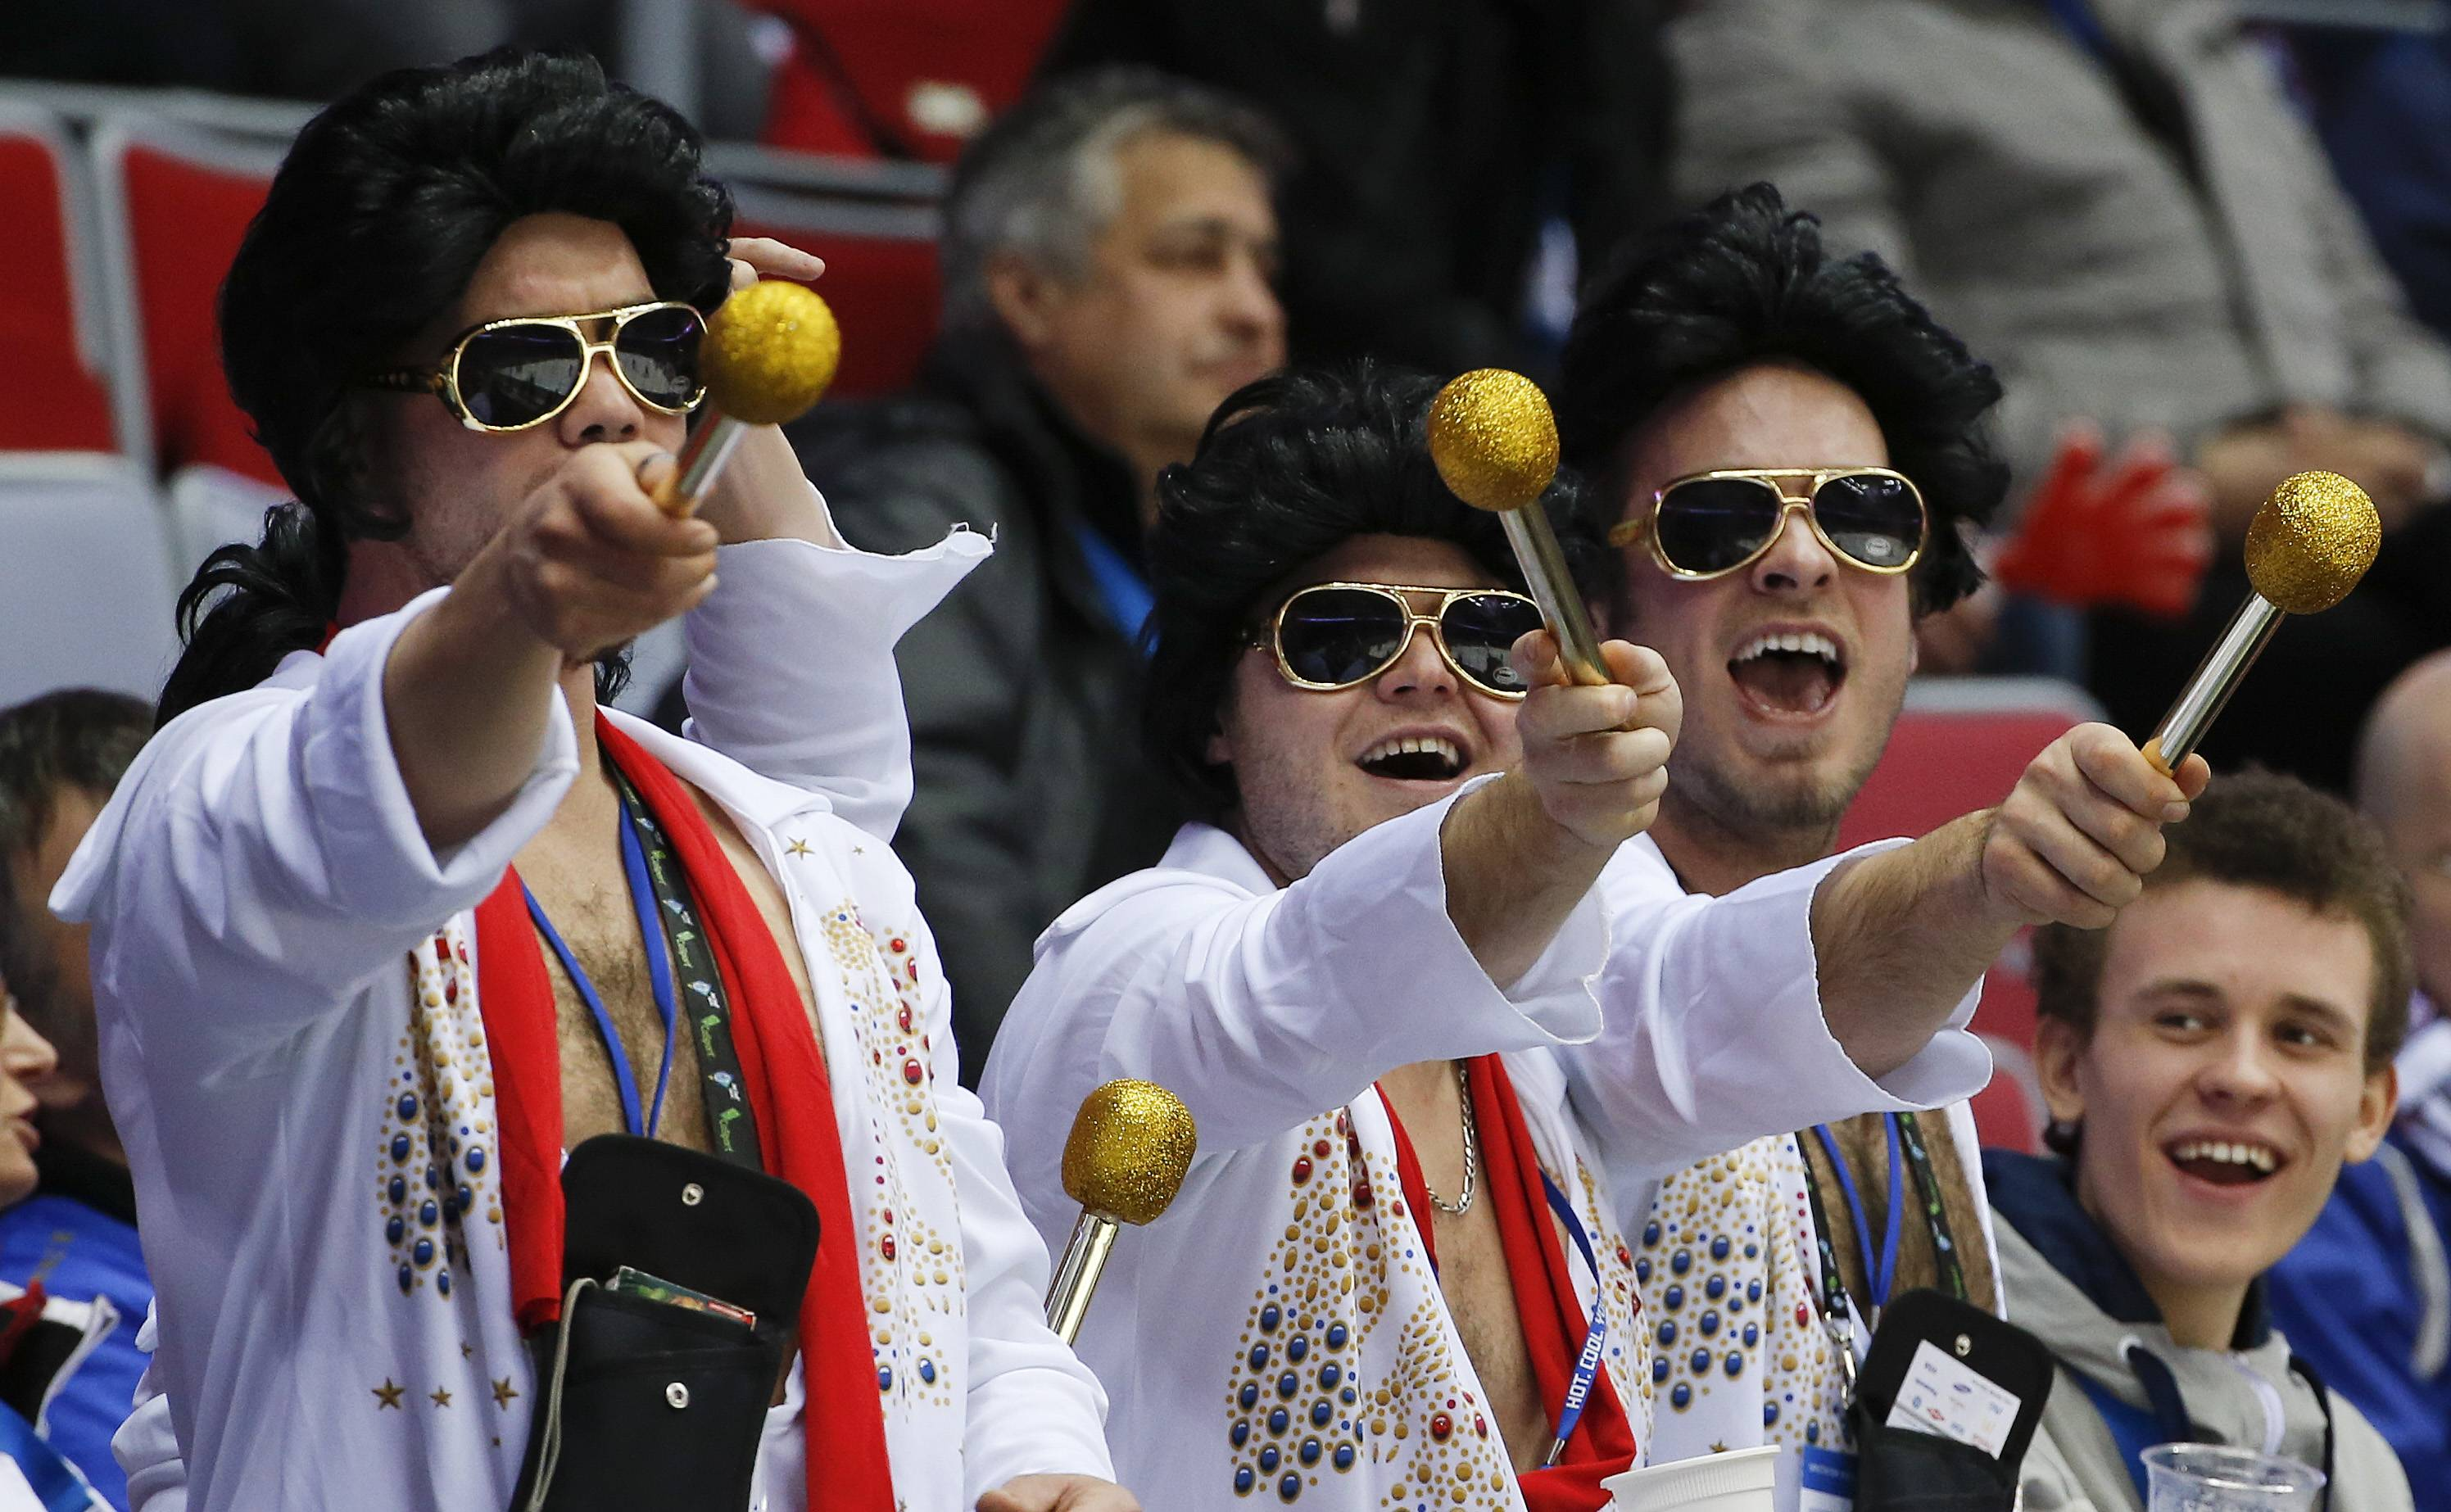 Hockey fans dressed as Elvis entertain other fans during a break in play during the third period of a men's quarterfinal ice hockey game between Canada and Latvia.